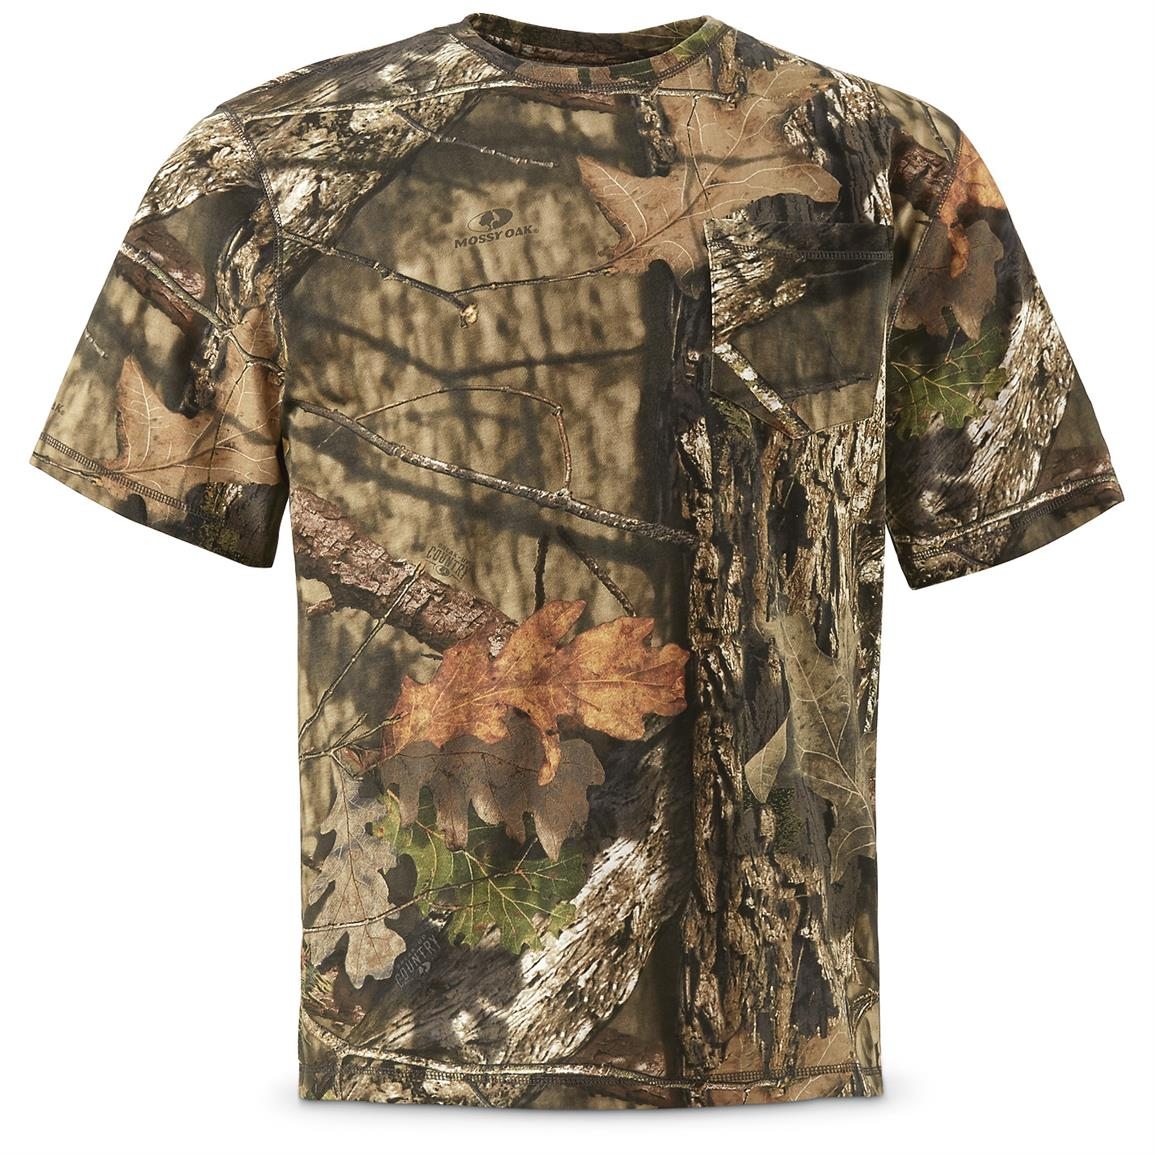 Guide Gear Men's Short Sleeve Camo T-Shirt, Mossy Oak Break-Up Country